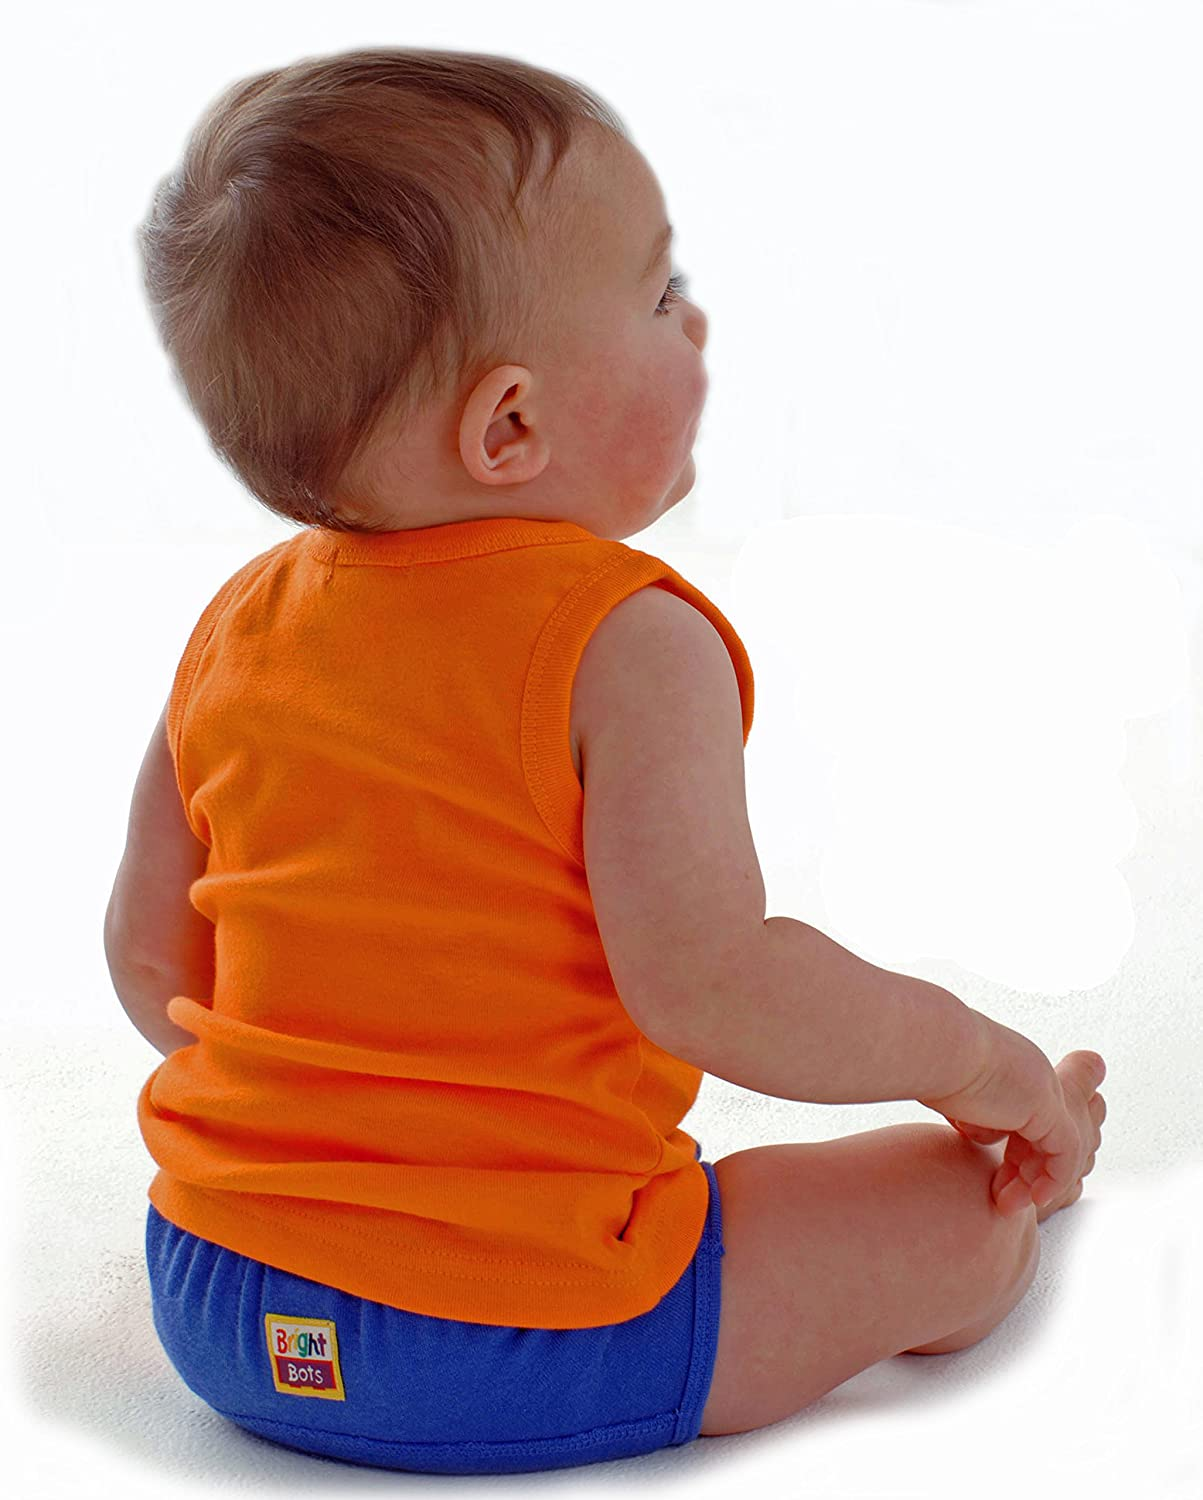 Bright Bots Washable Potty Training Pants Culotte dapprentissage 4pk Large with PUL Lining approx 24-30mois Garcon